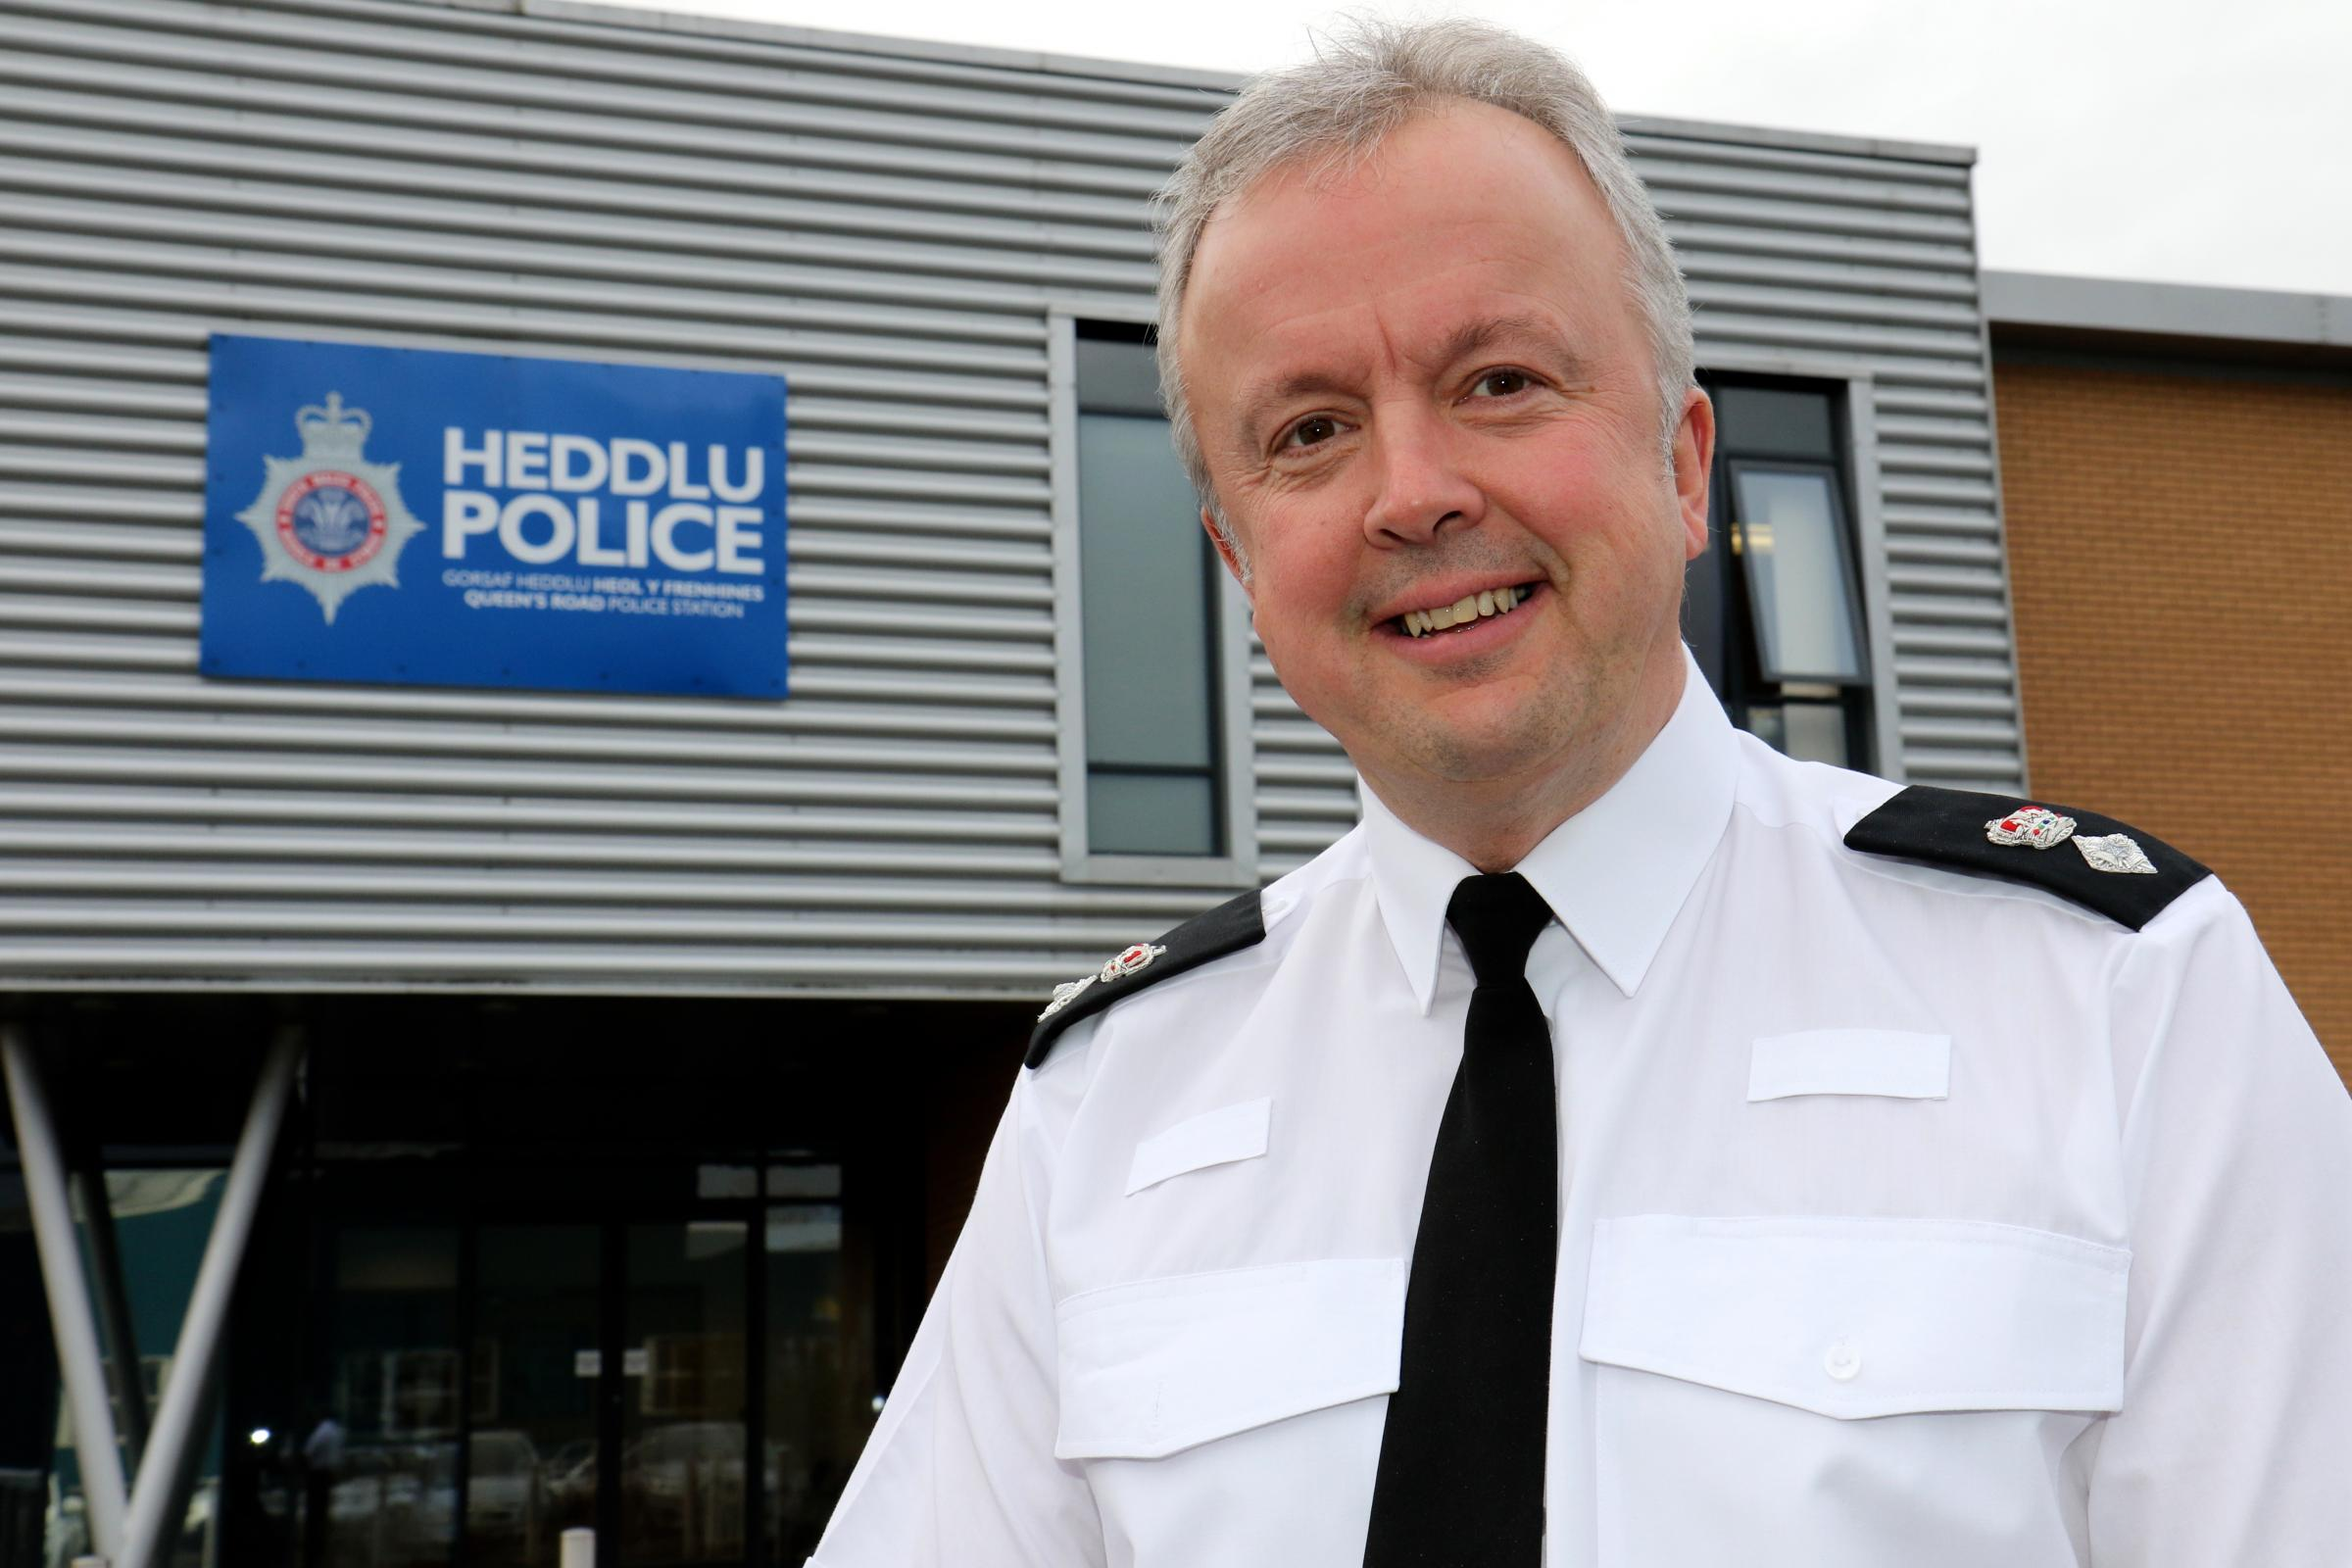 The new Chief Supt Alun Morgan